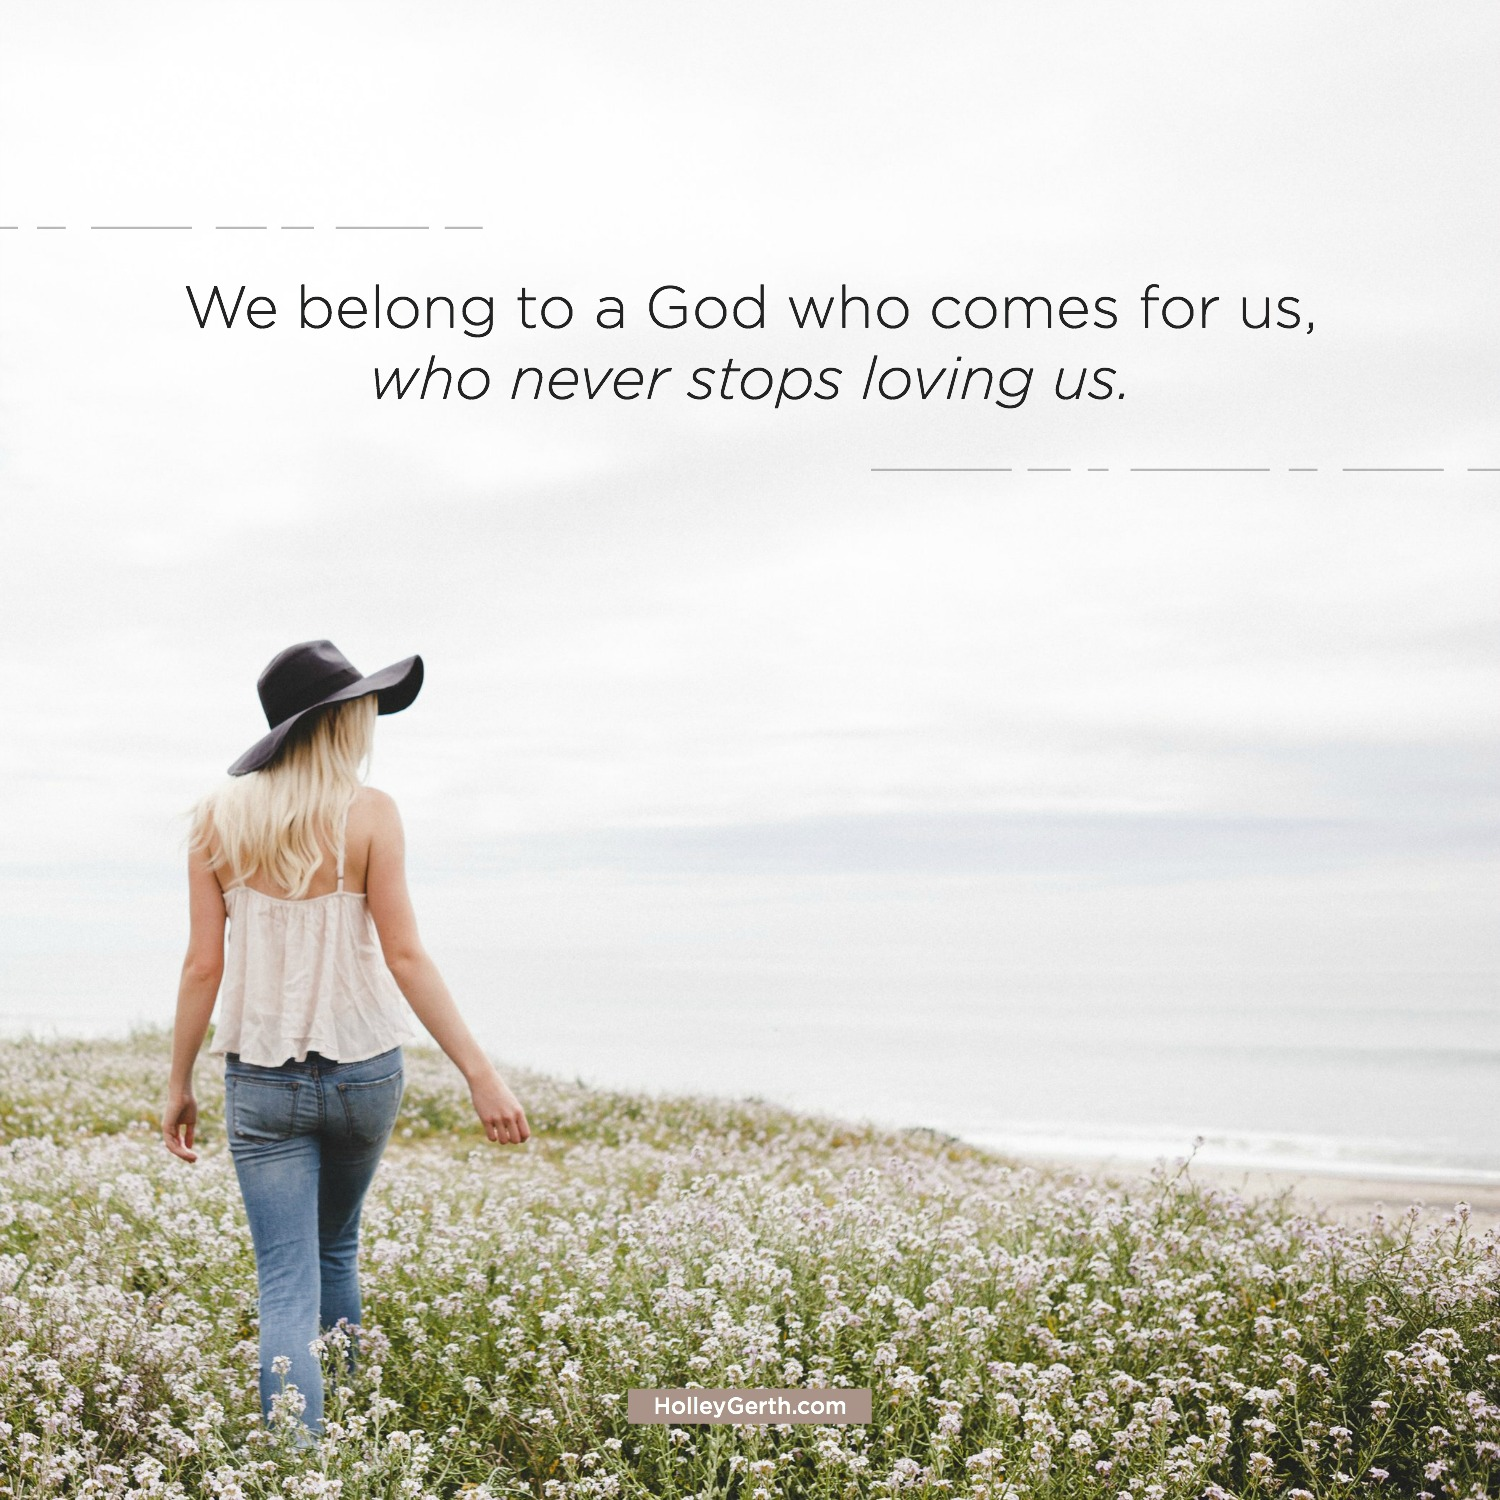 We belong to a God who comes for us, who never stops loving us.